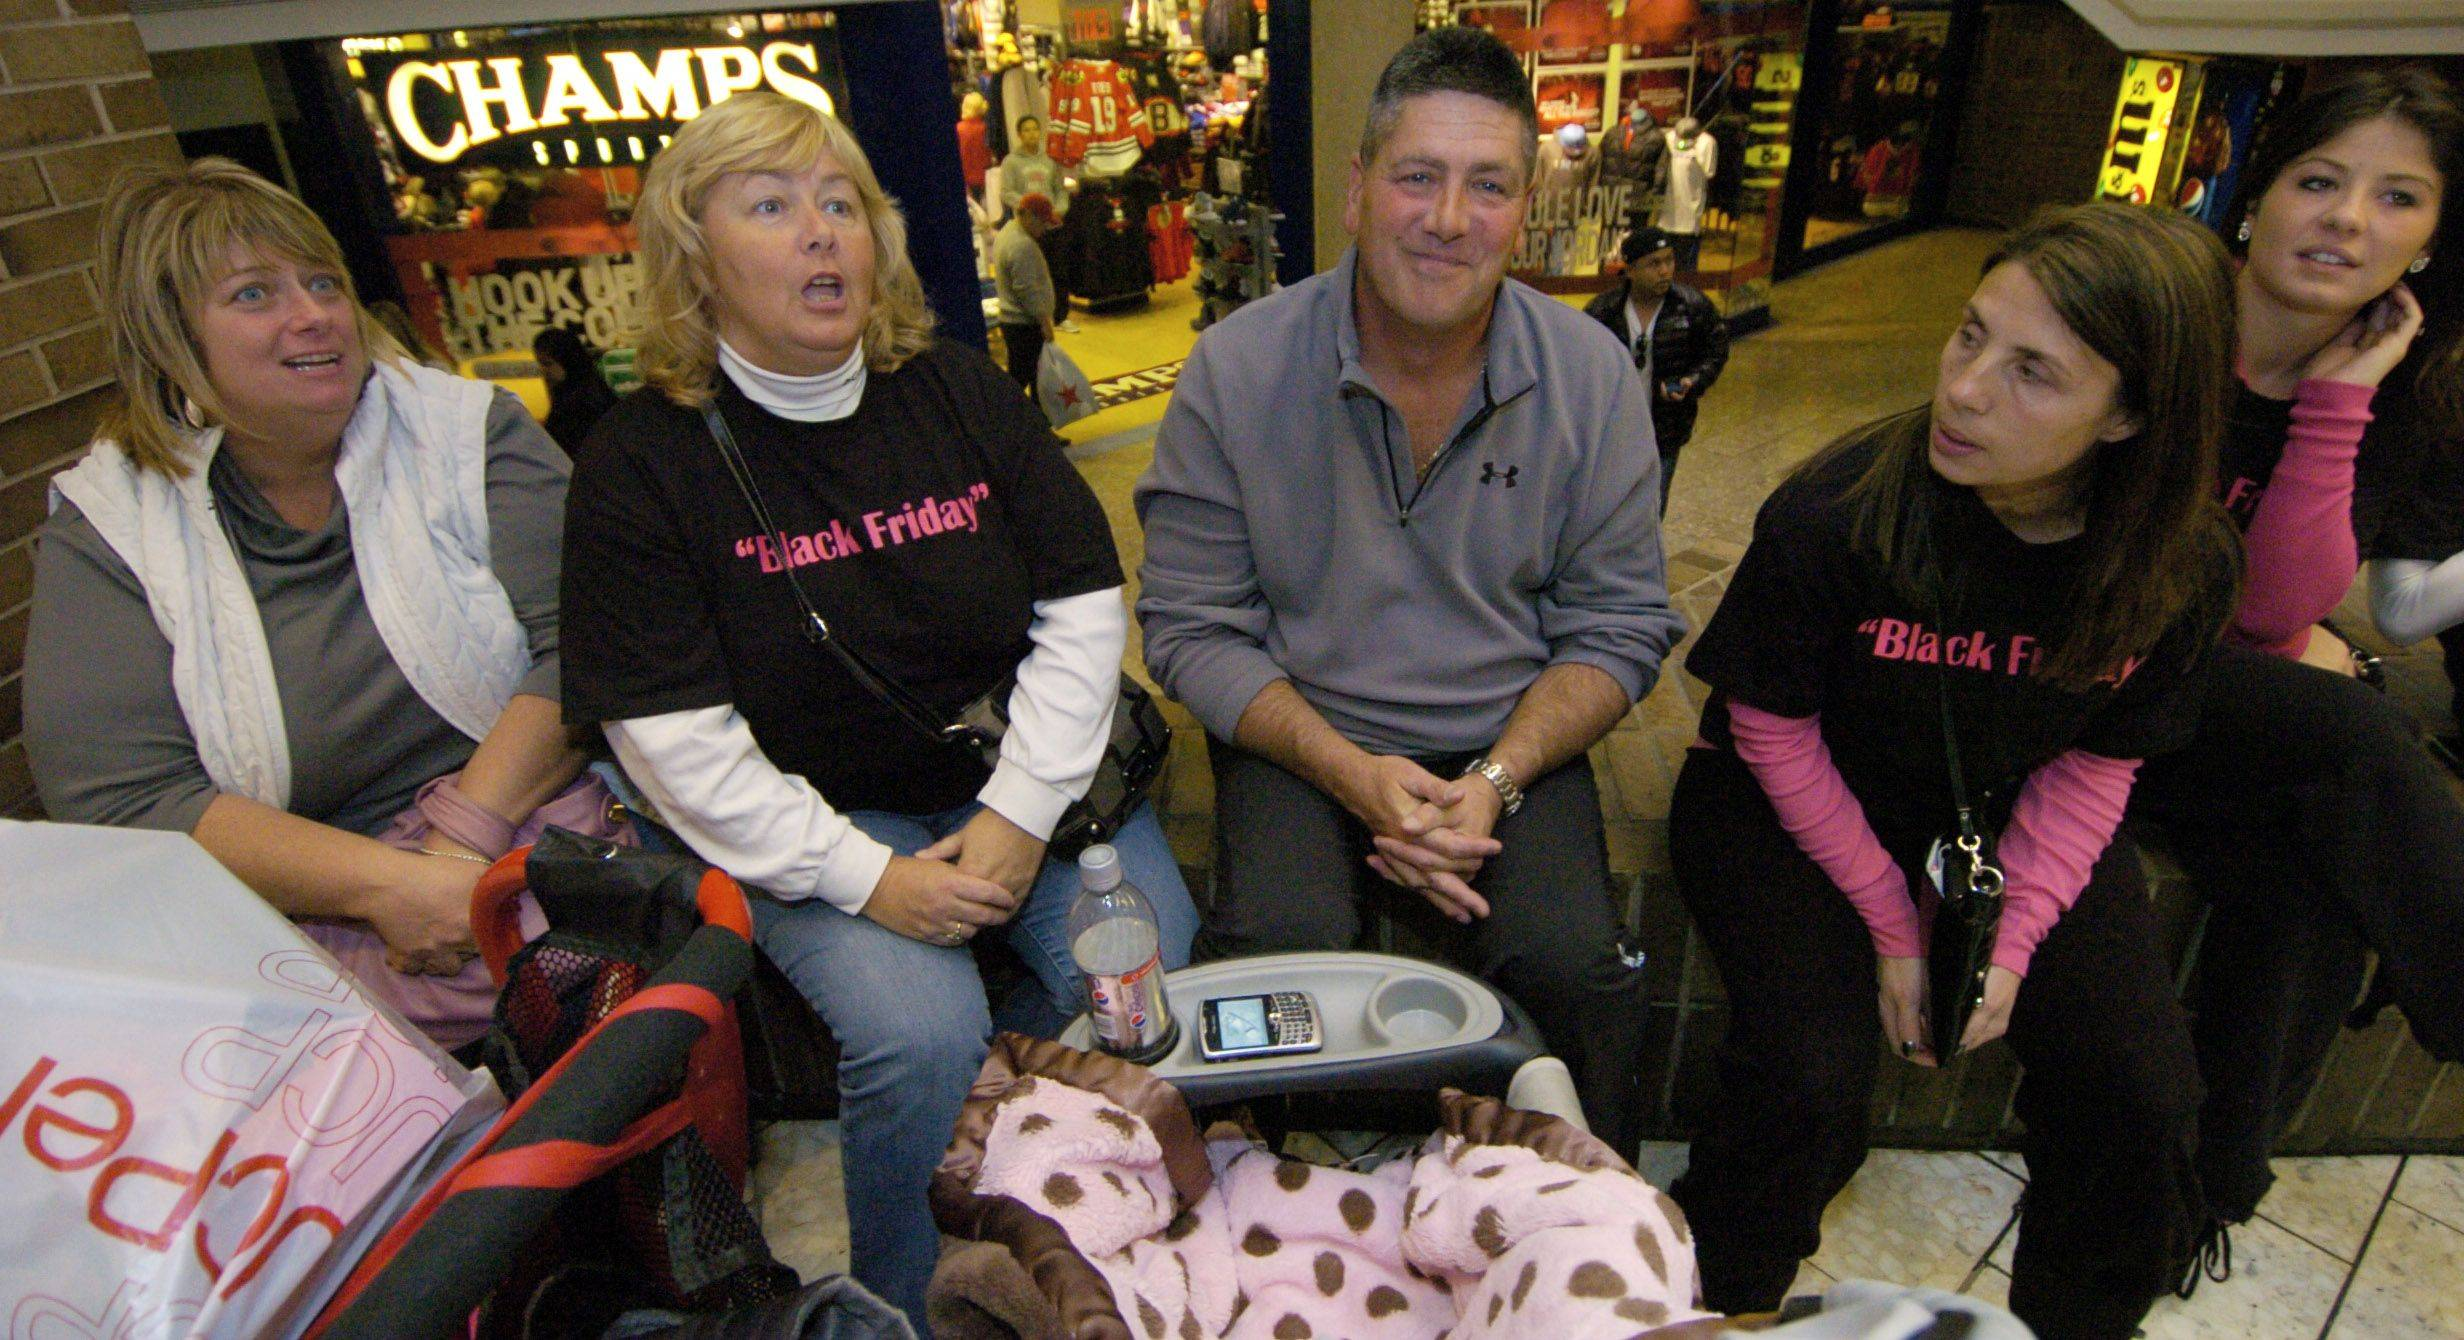 Patty McElroy of Chicago, from left, Mary Nessling of Rosemont, Bill Isabell and Stephanie Otte of Northlake during Black Friday's shopping in Schaumburg.